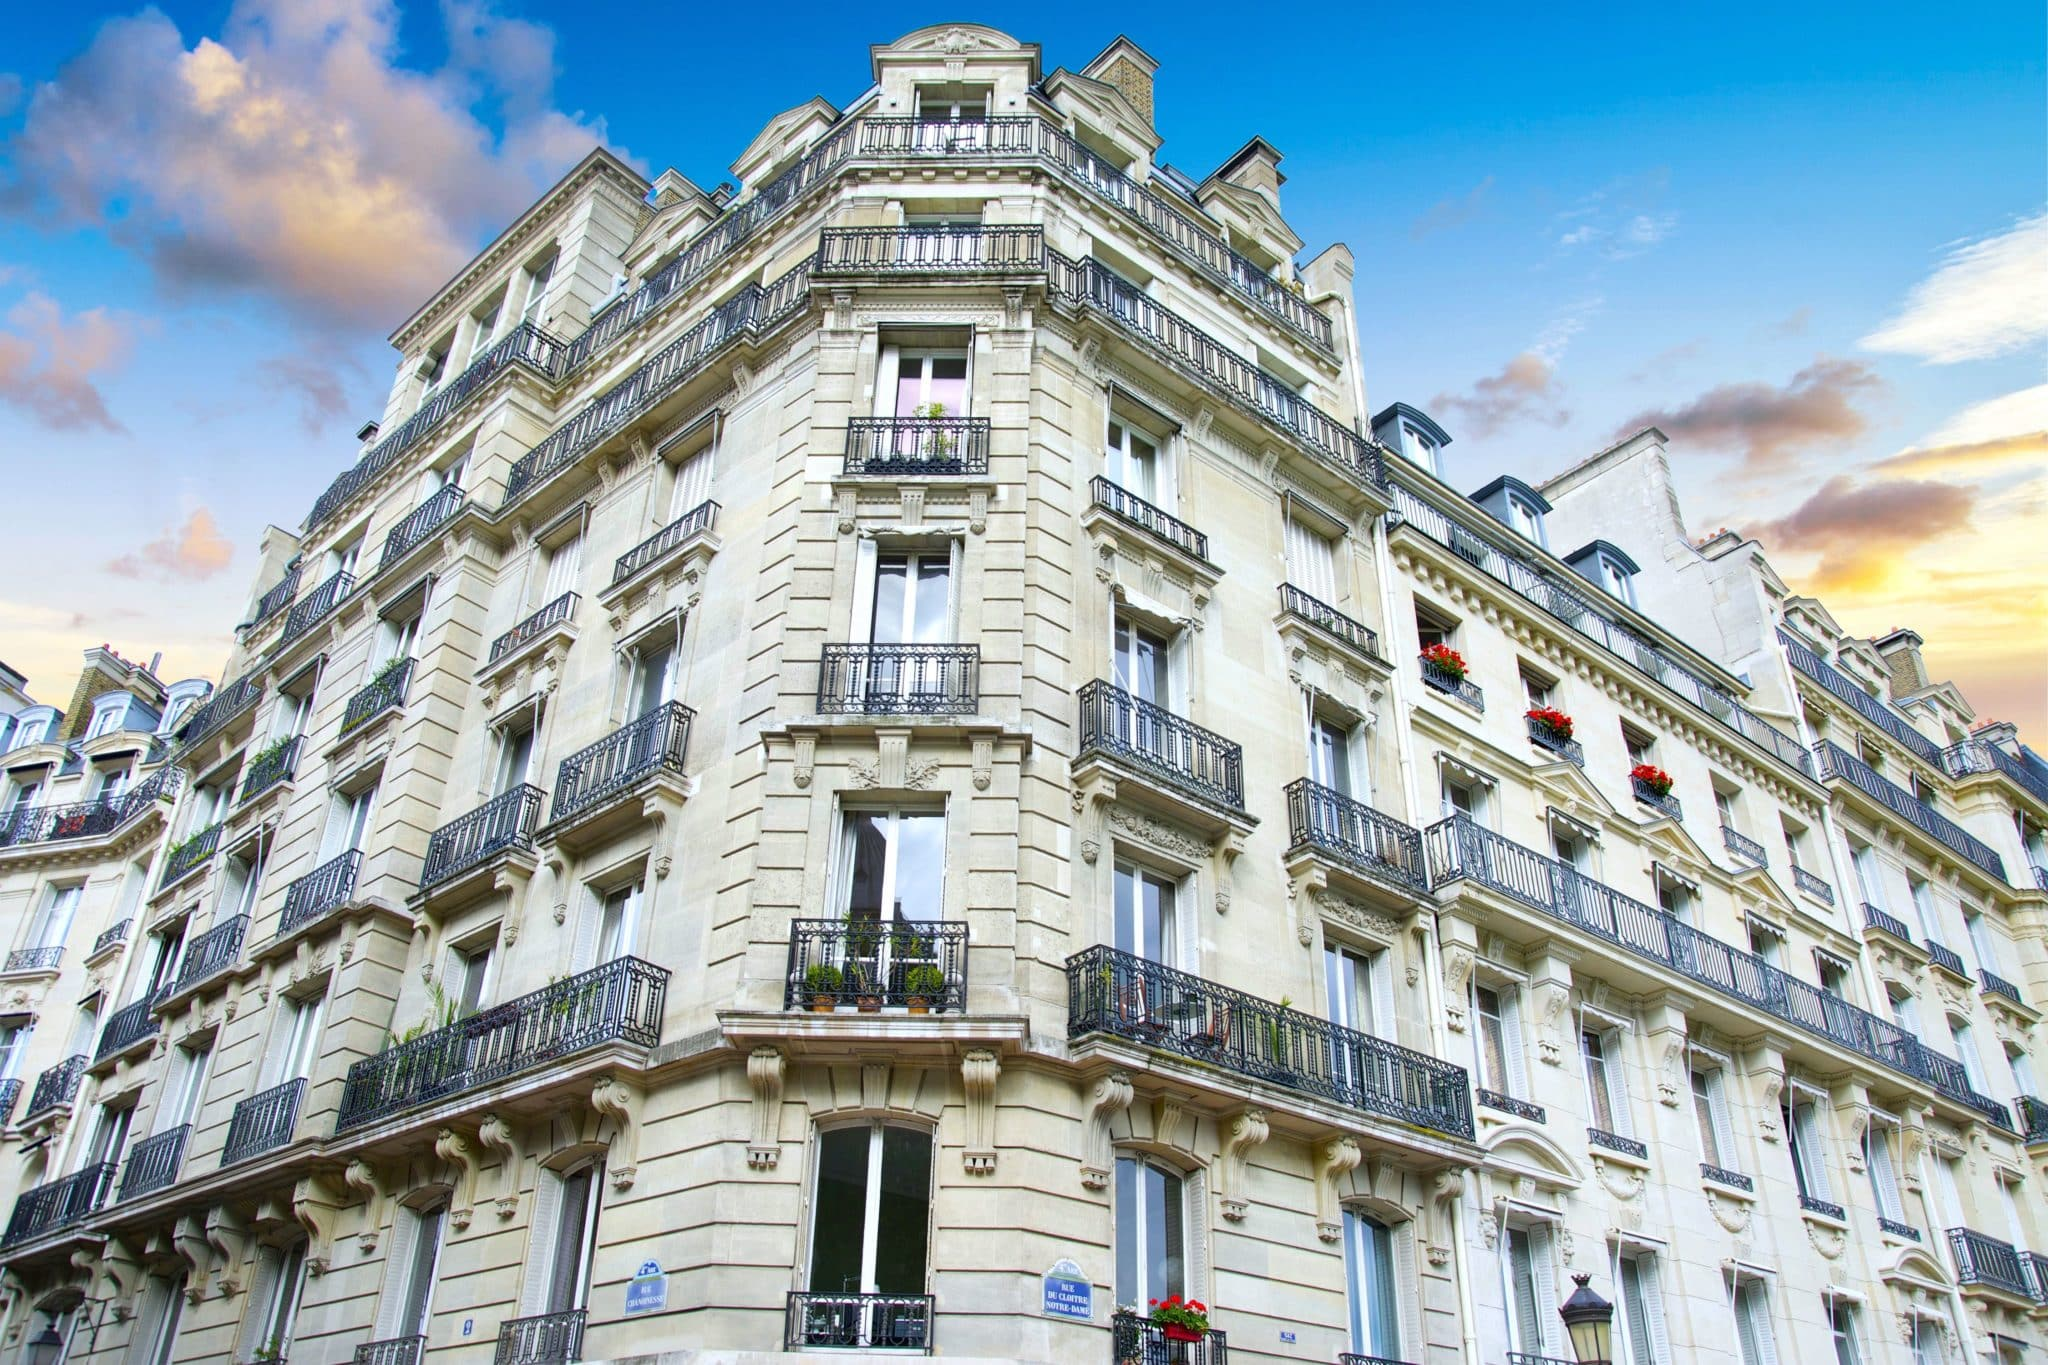 Achat immobilier : les règles d'or